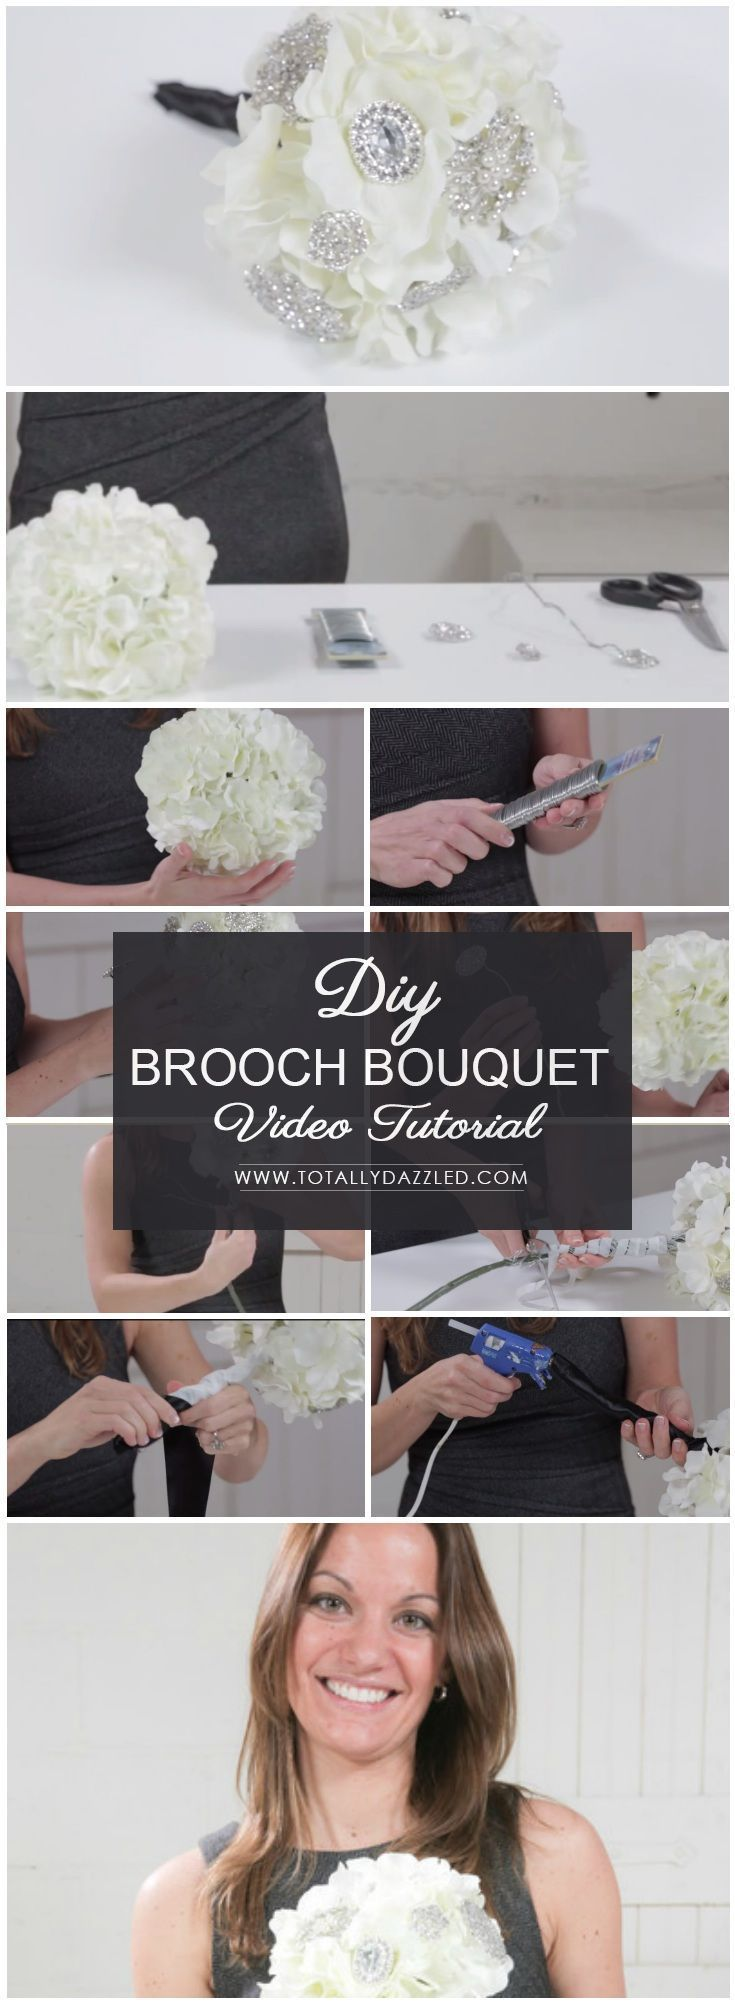 How To Make A Simple Brooch Bouquet Brooch Bouquet Tutorial